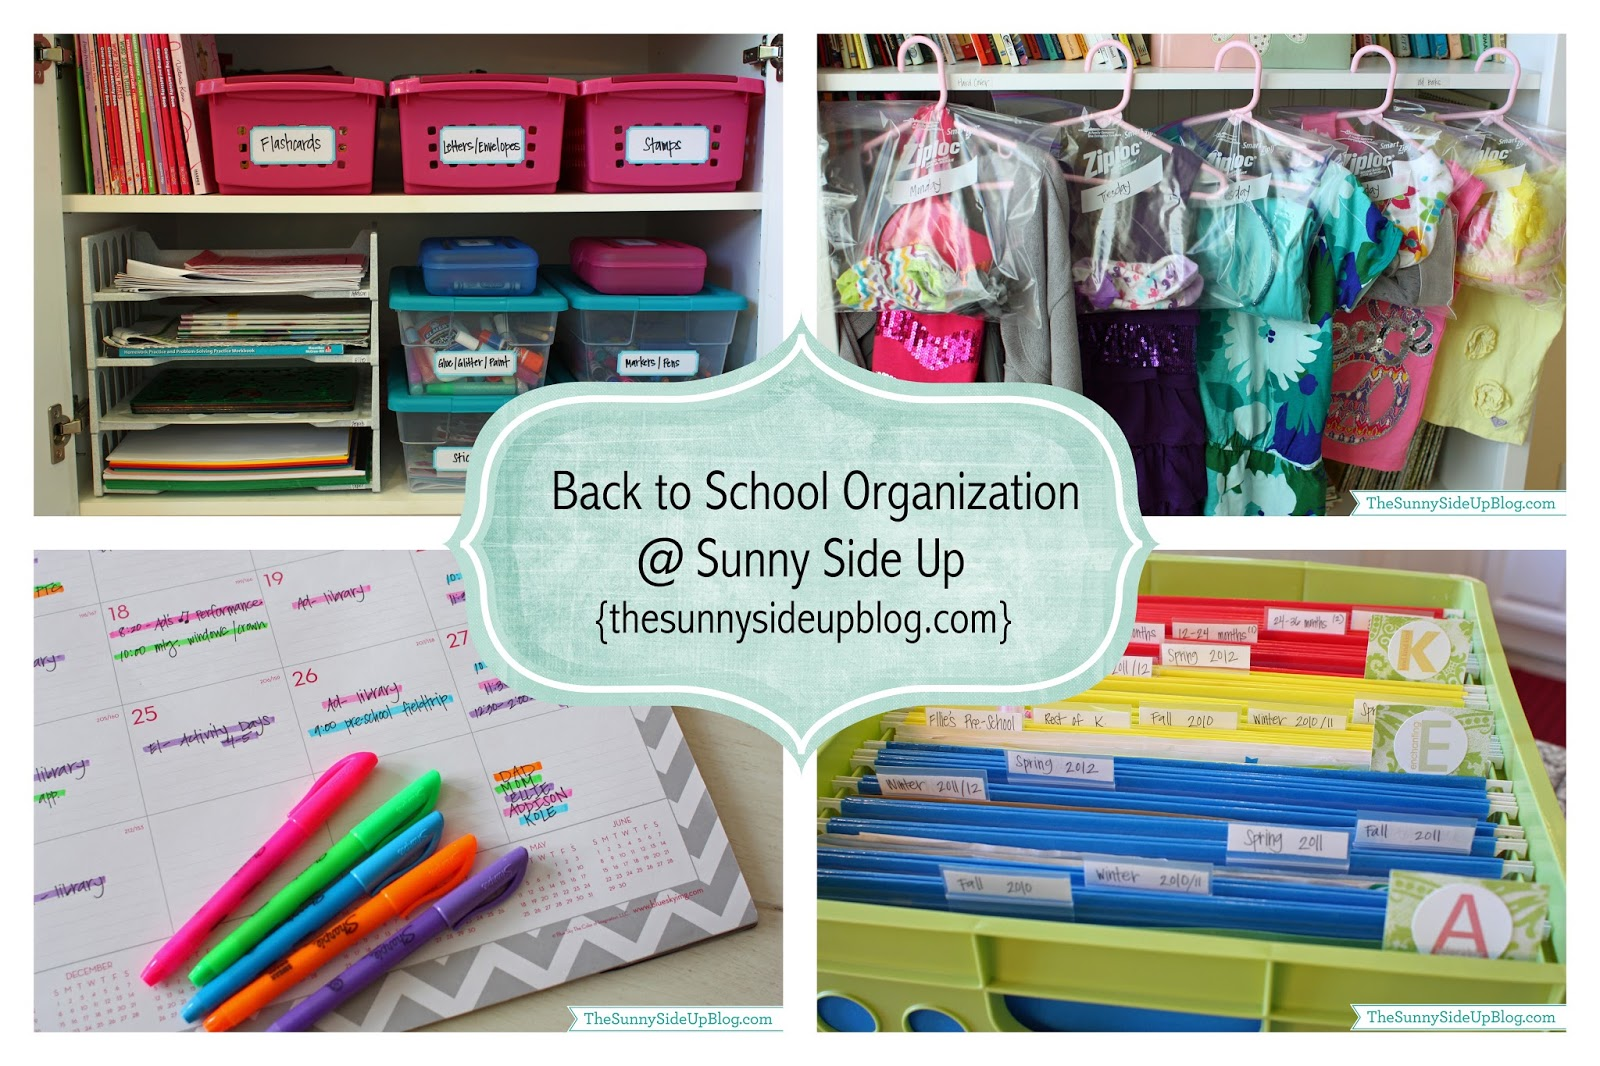 Back to school organization re run the sunny side up blog - Back to school organization ...